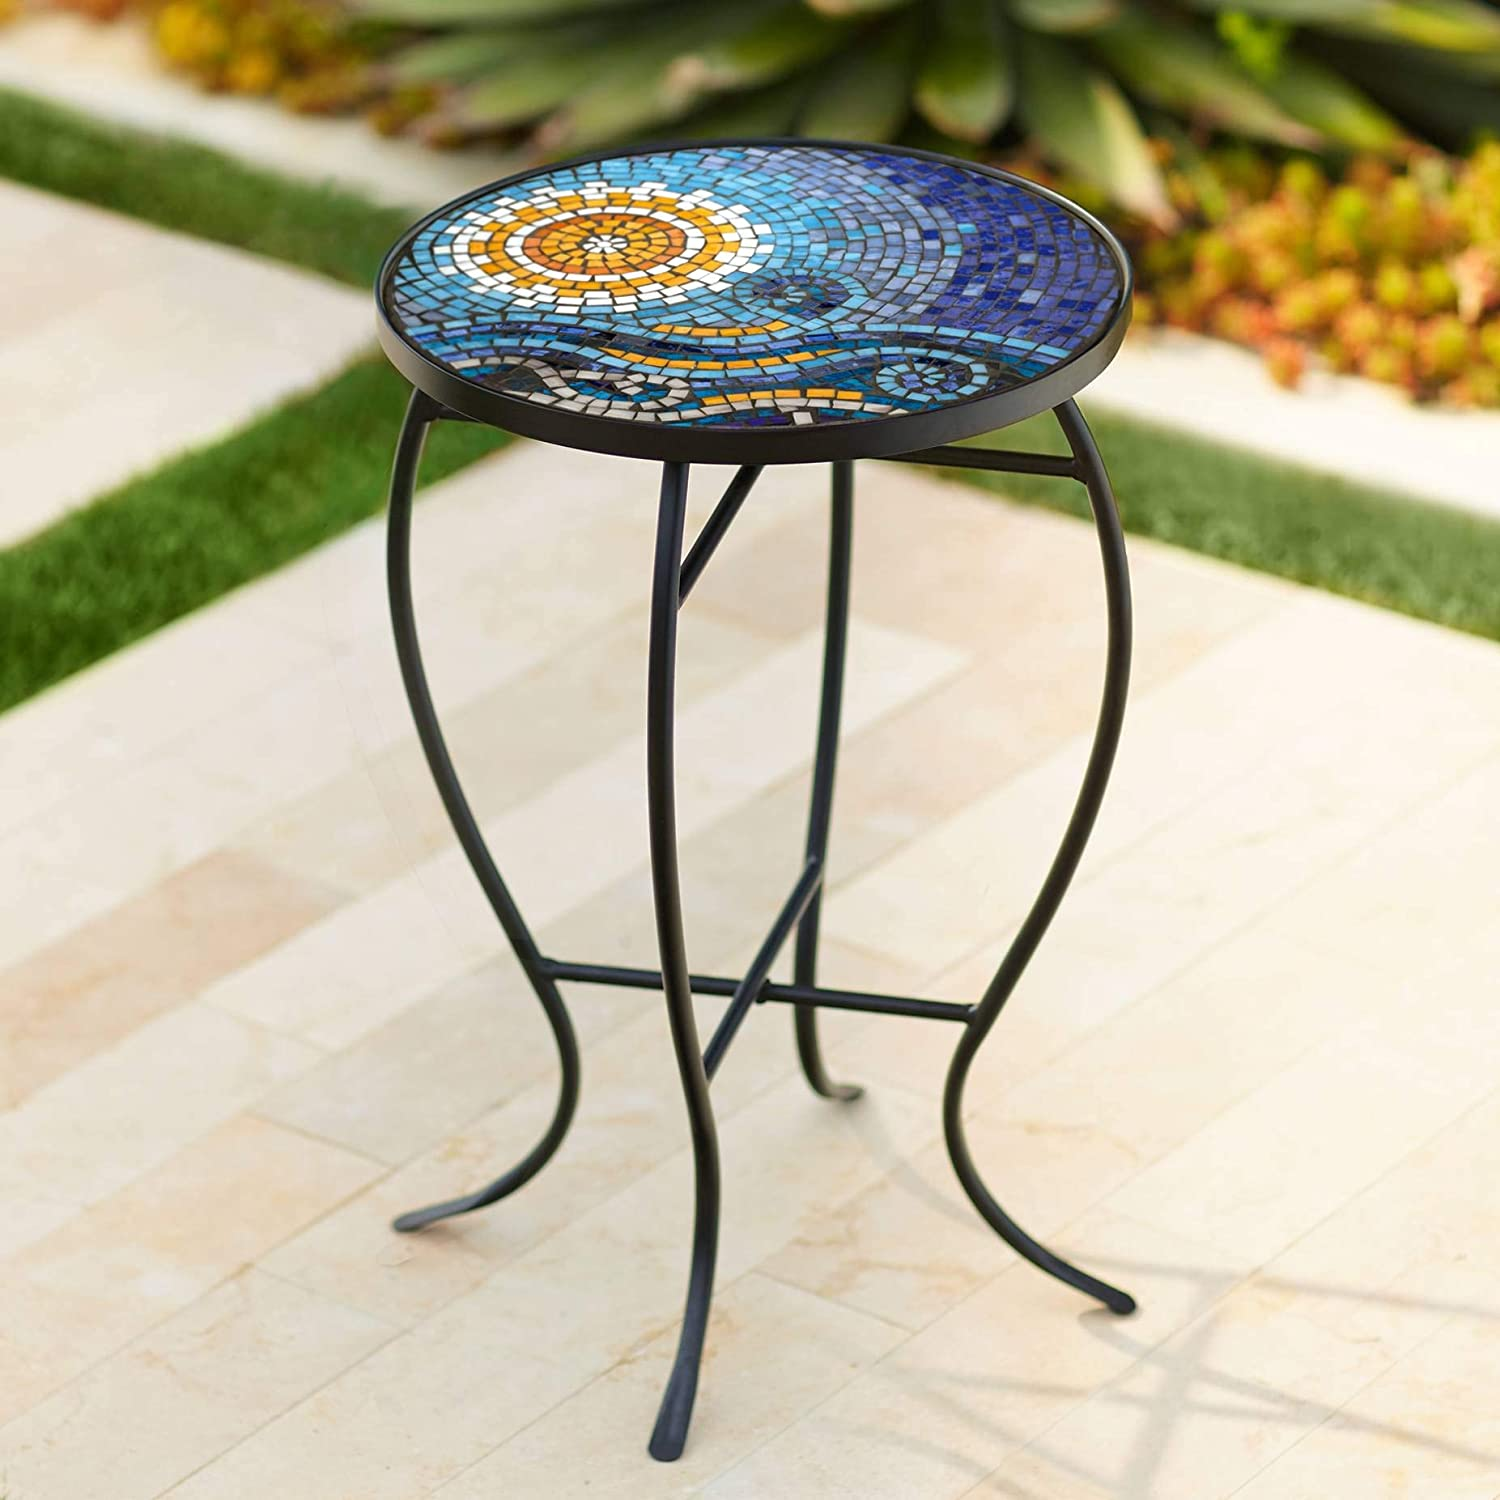 Teal Island Designs Ocean Mosaic Black Iron Outdoor Accent Table: Home Improvement